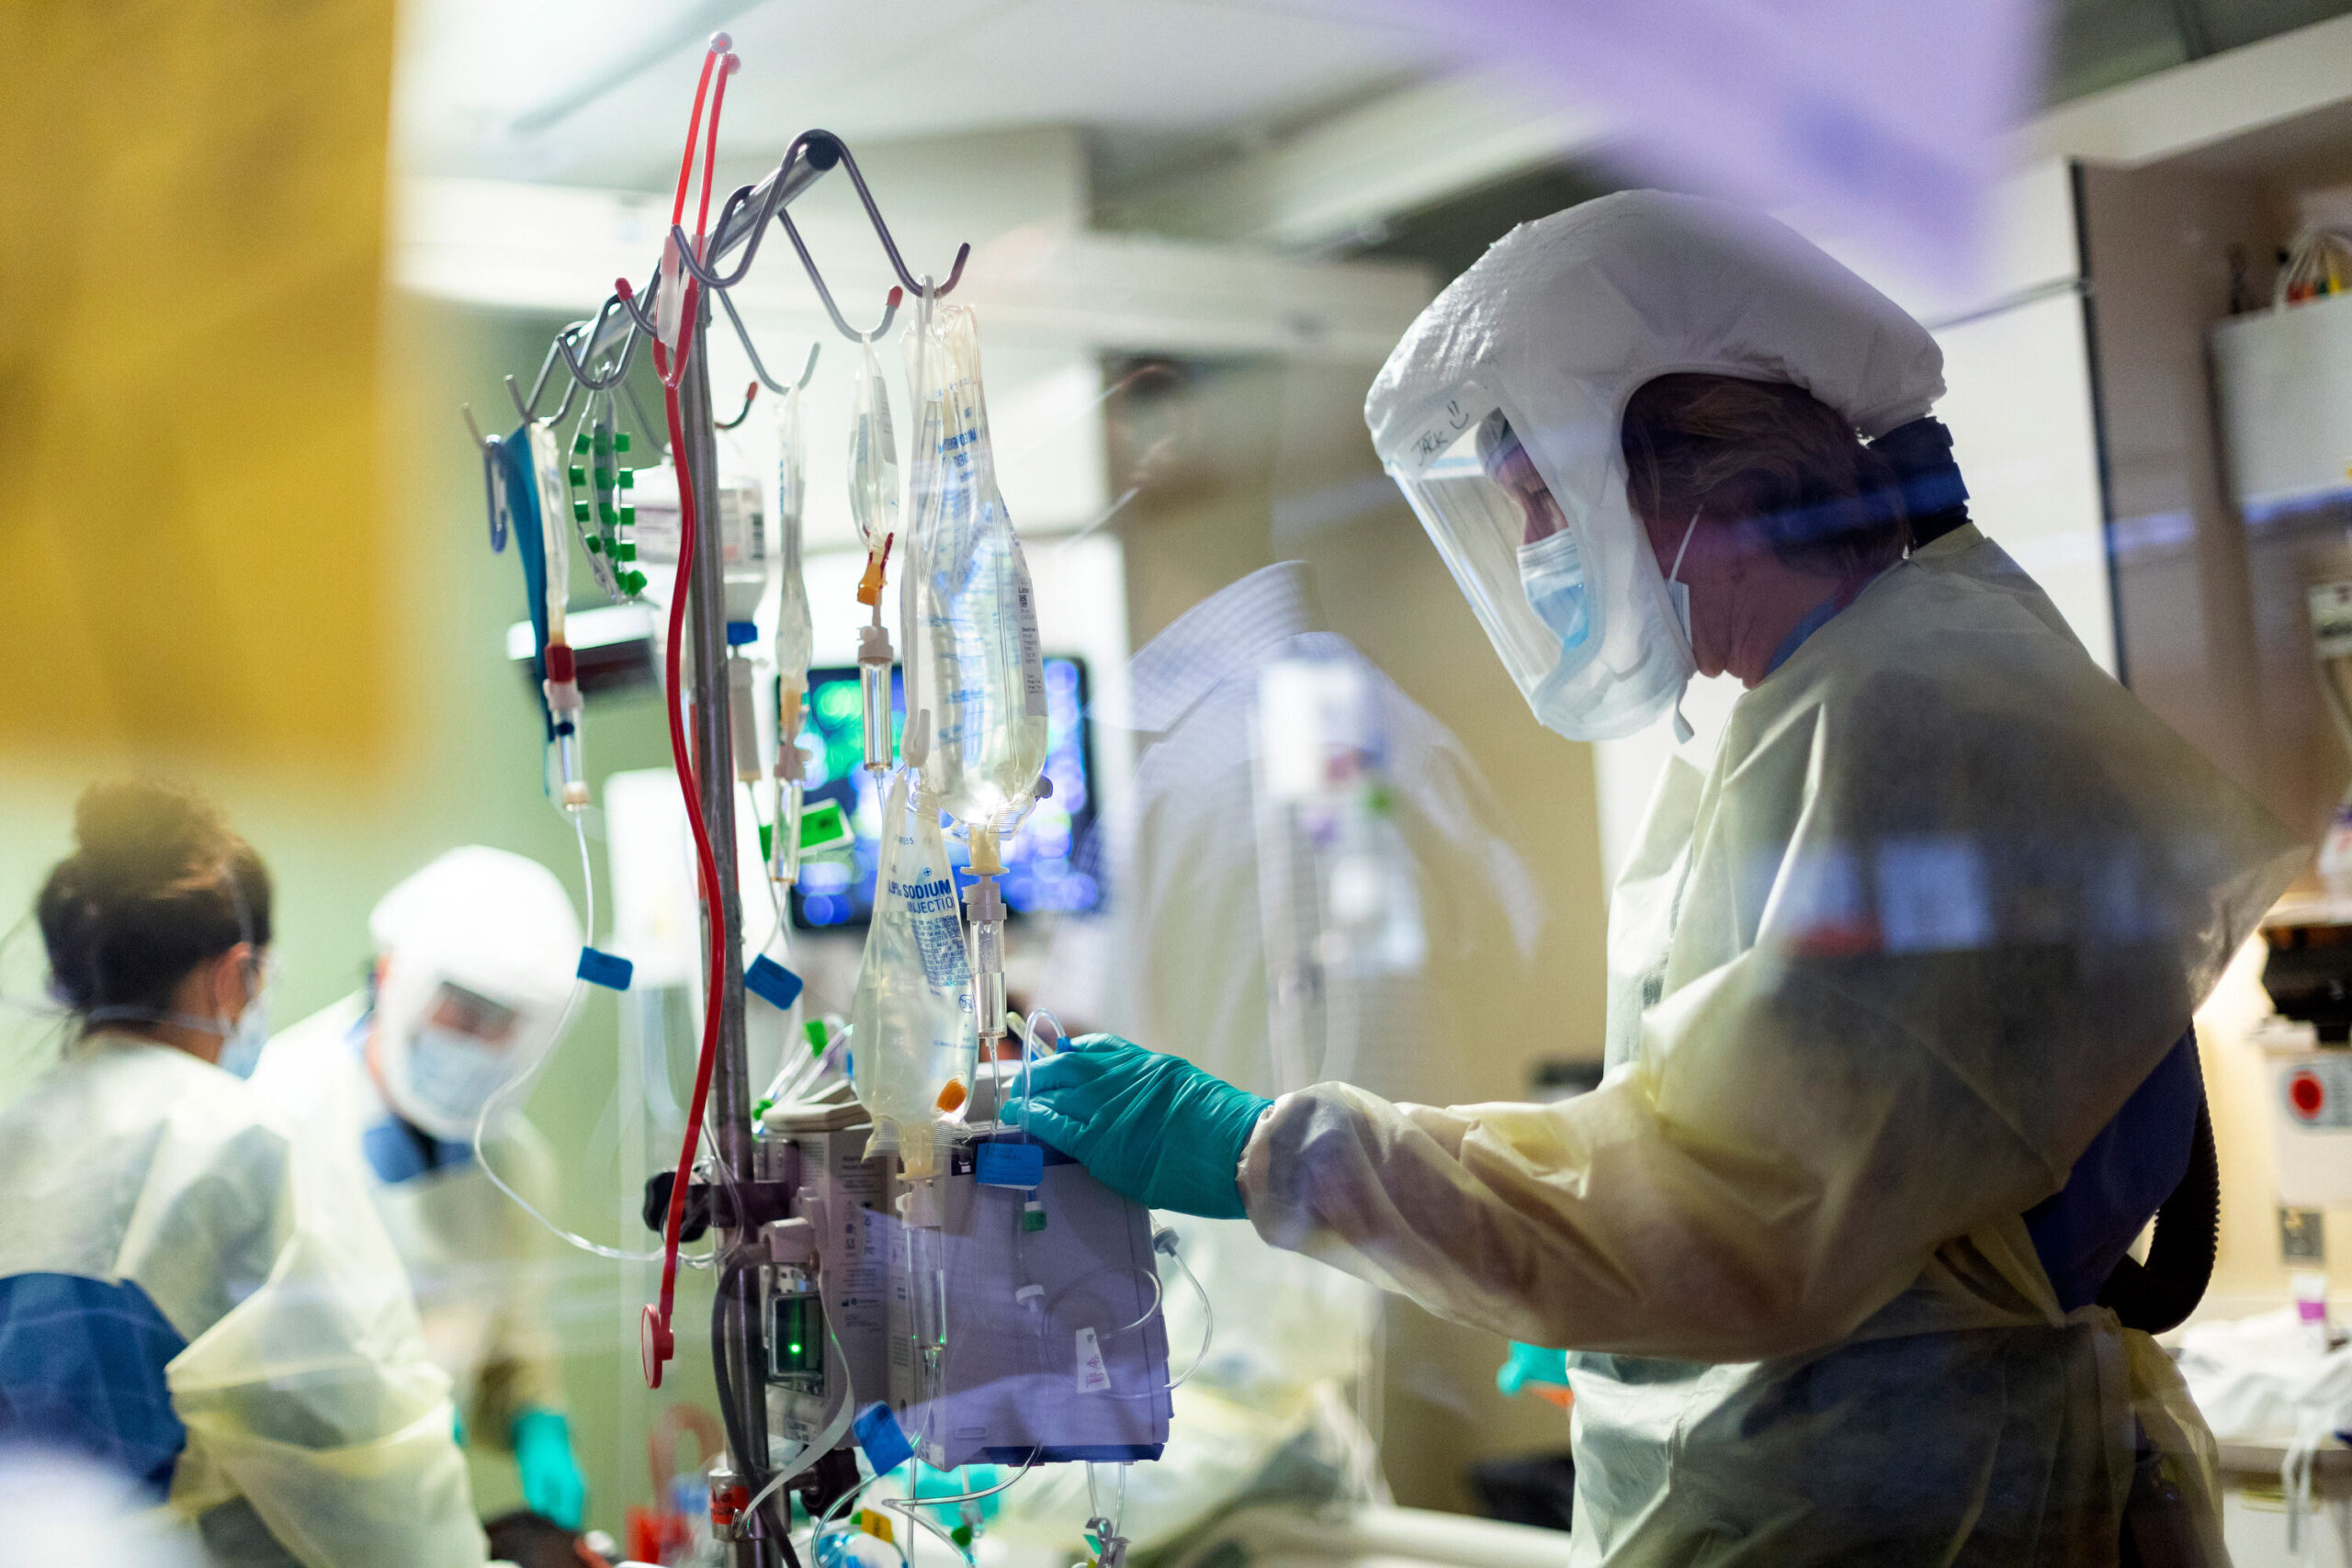 <i>Kyle Green/AP</i><br/>While the rate of Covid-19 infections nationwide is slowing